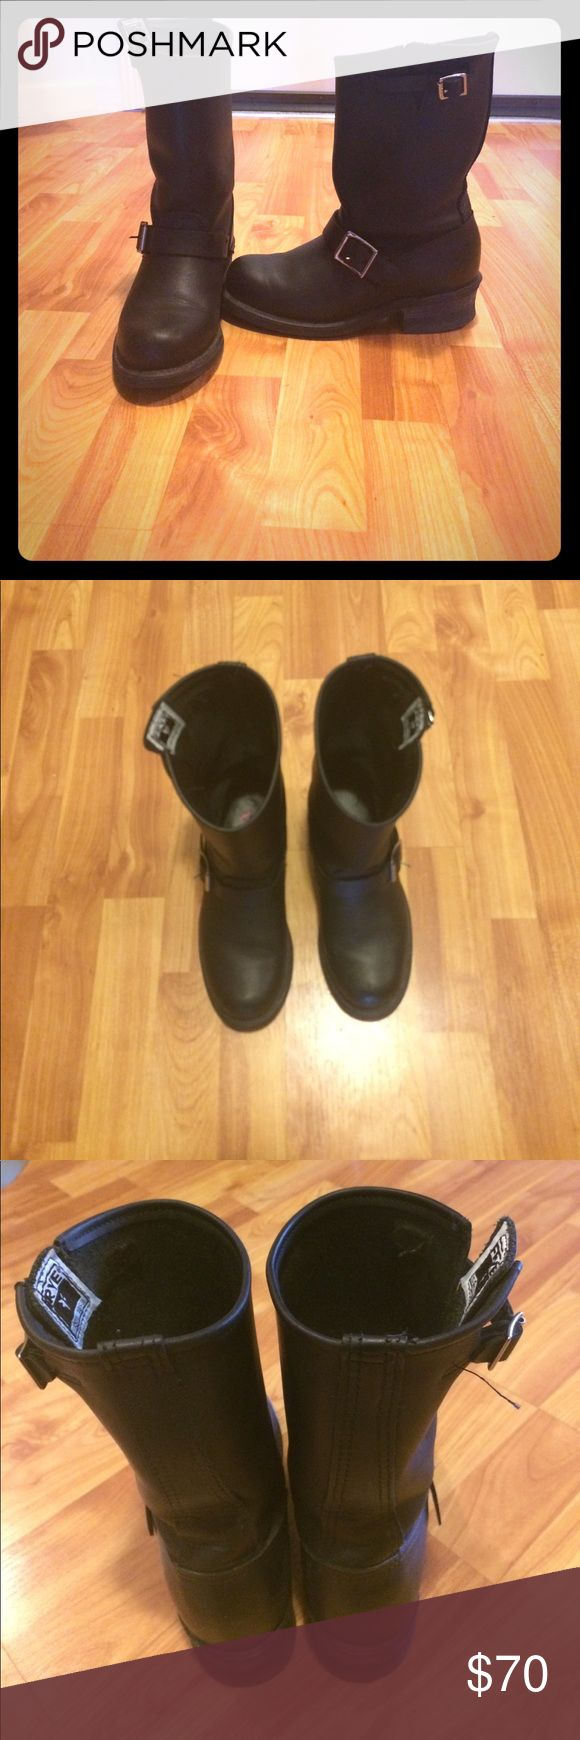 Black 12R Frye Boots! Excellent used condition Frye leather boots. I only wore these a few times, but they are just a bit too snug on my right foot to hold onto. These boots can be worn with jeans, or dressed up with a dress. Very versatile! Frye Shoes Co